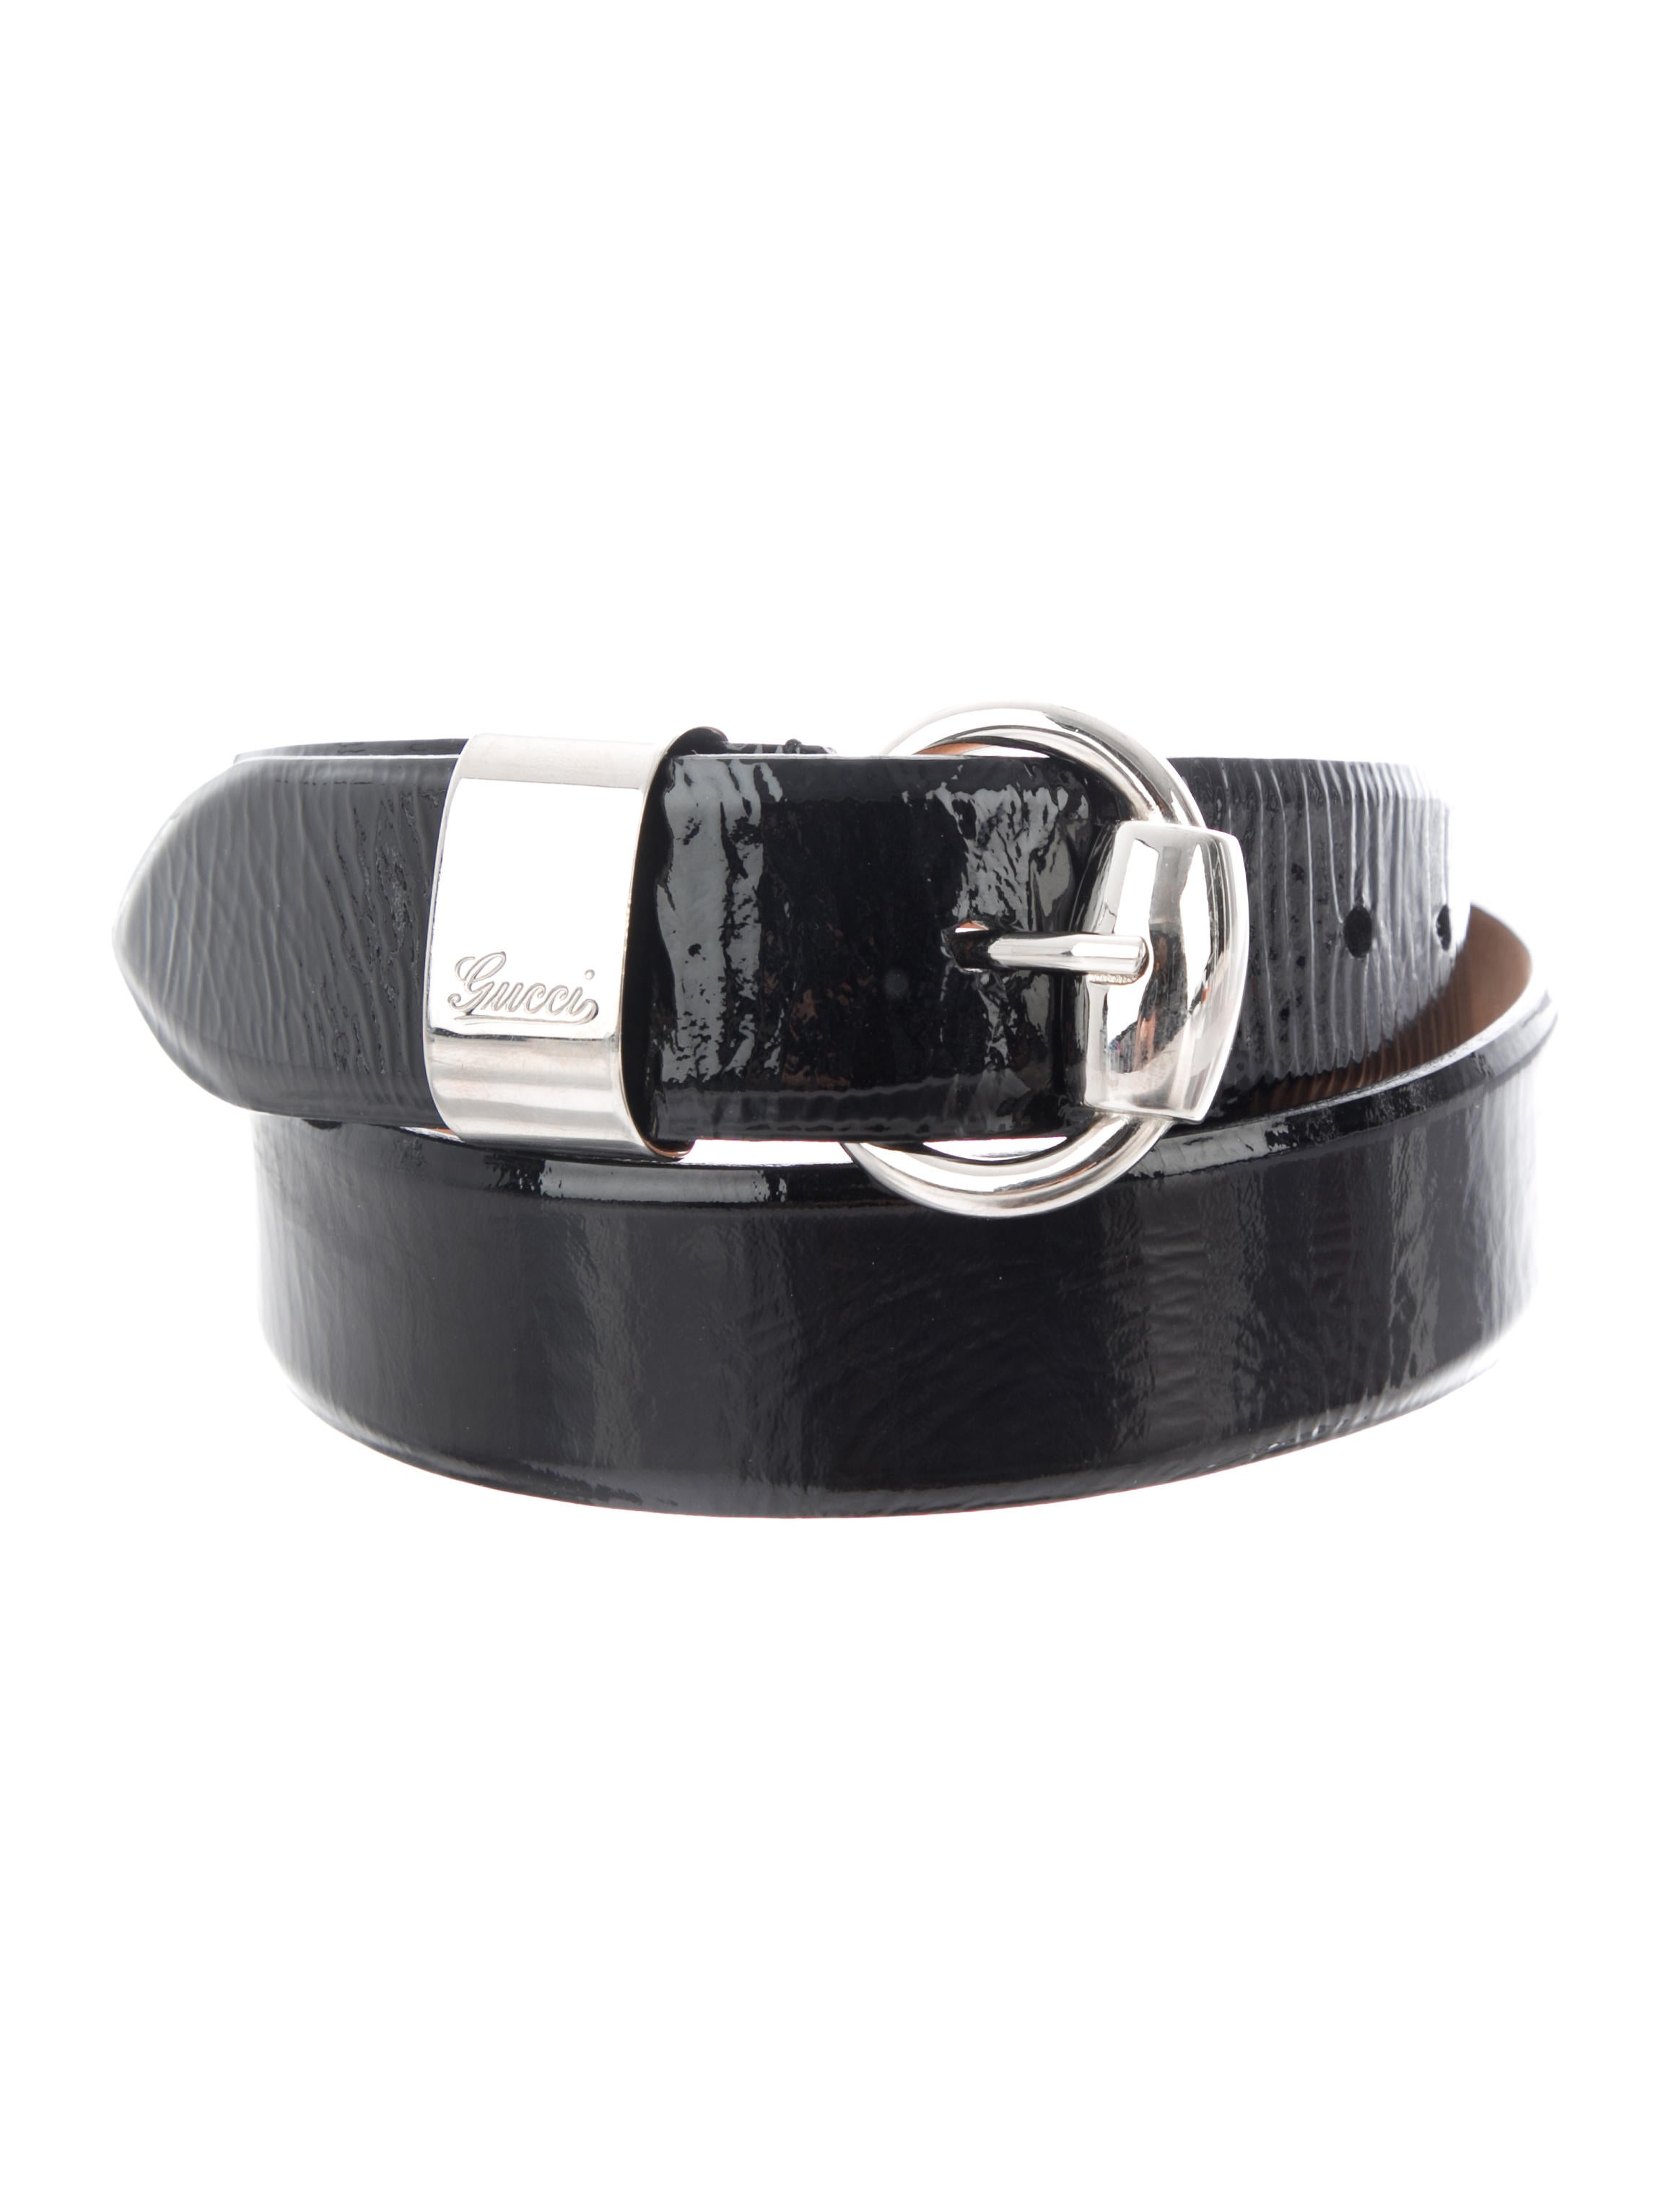 26864629997 Gucci Patent Leather Buckle Belt - Accessories - GUC279170